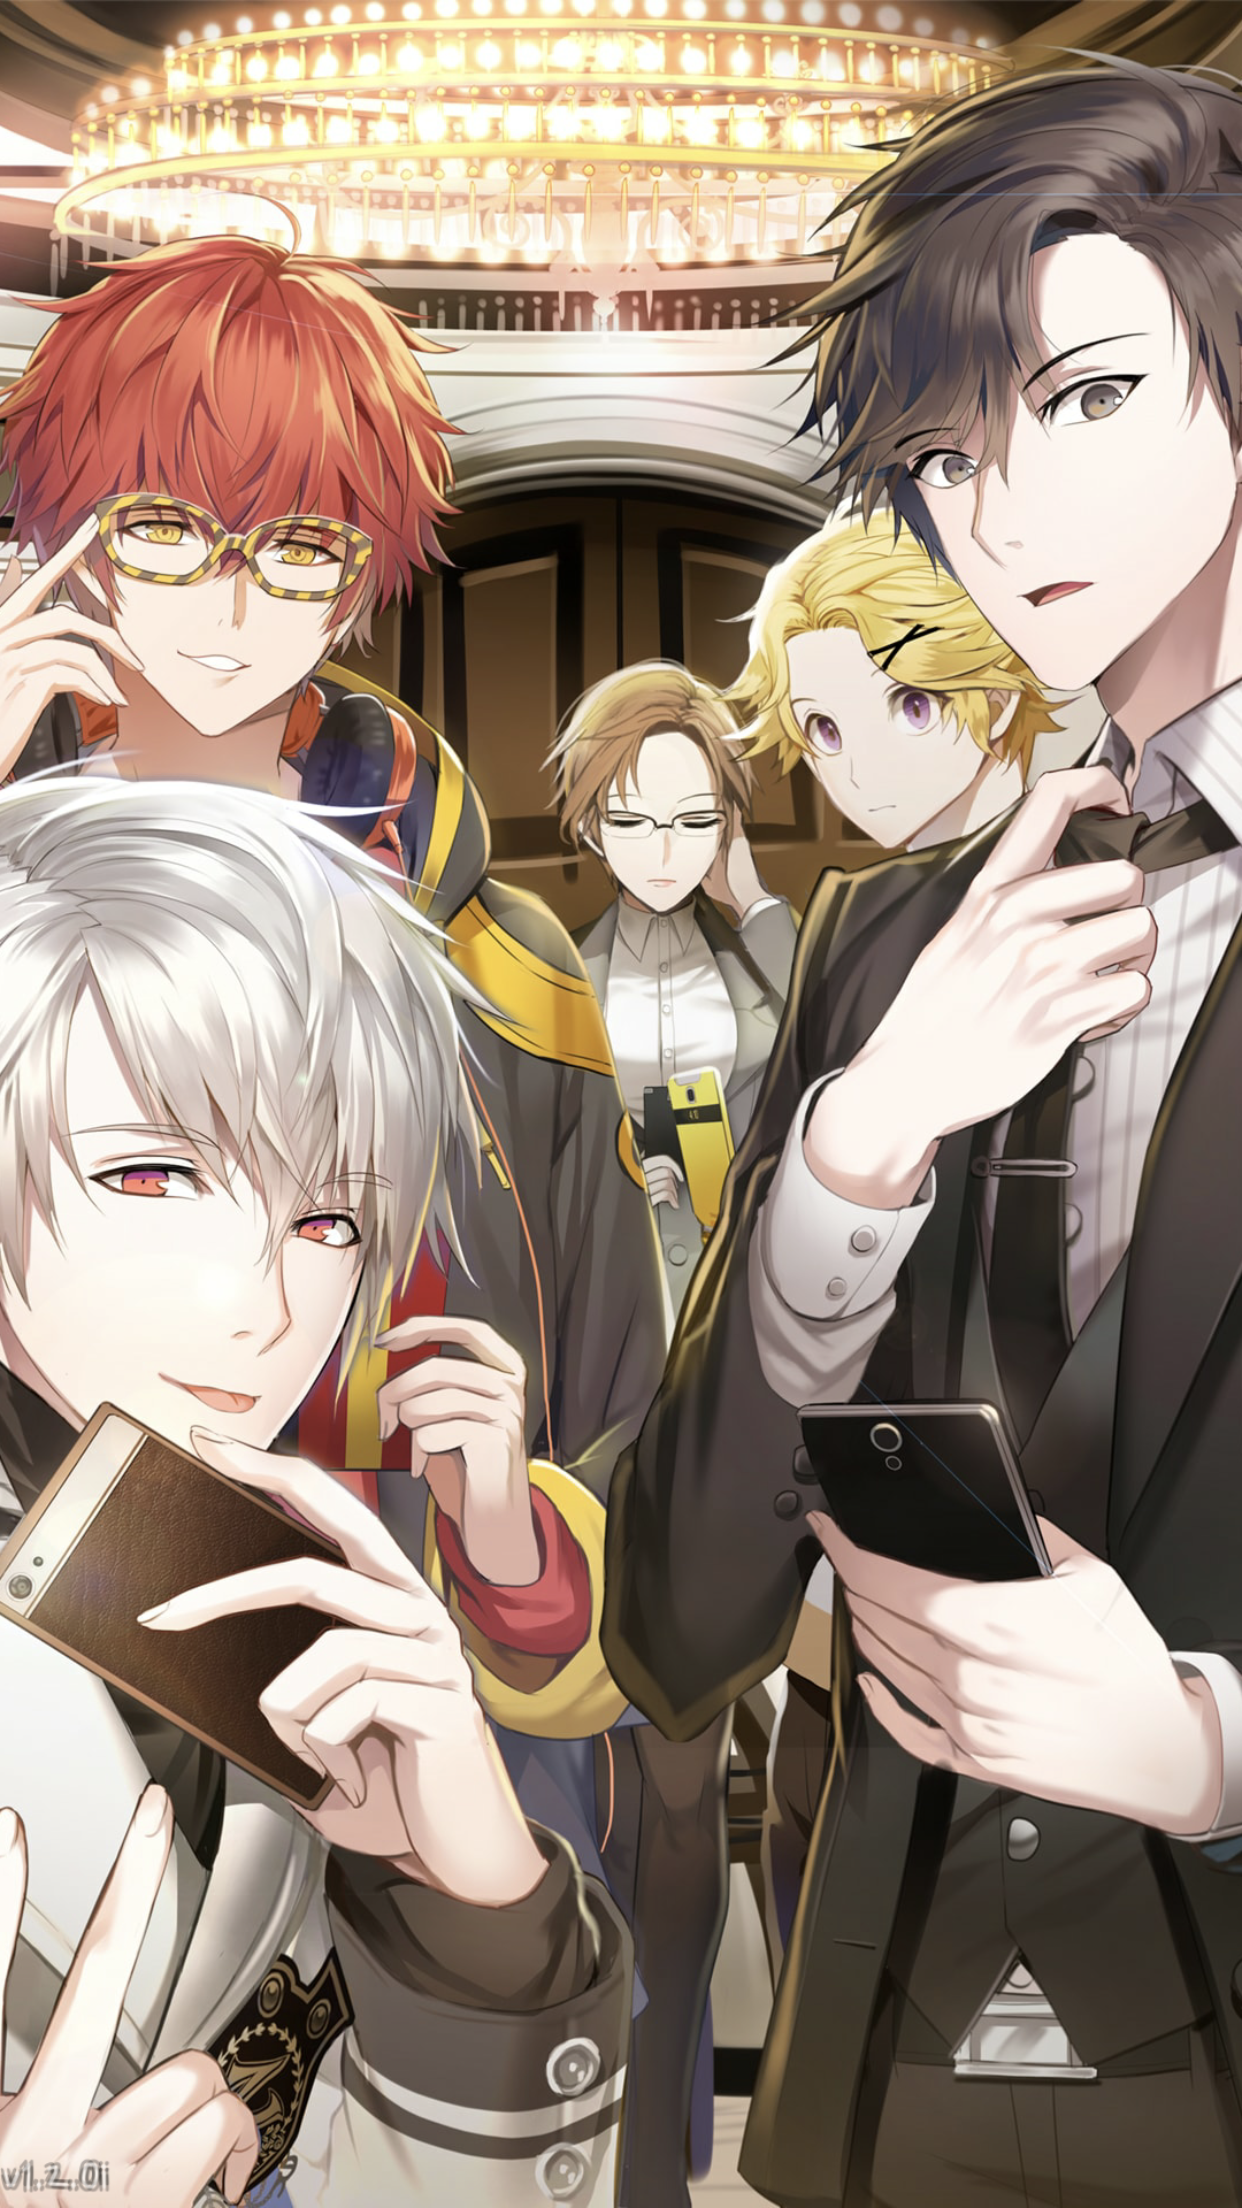 Pin by yassiii Babazzz on Anime Zen mystic messenger